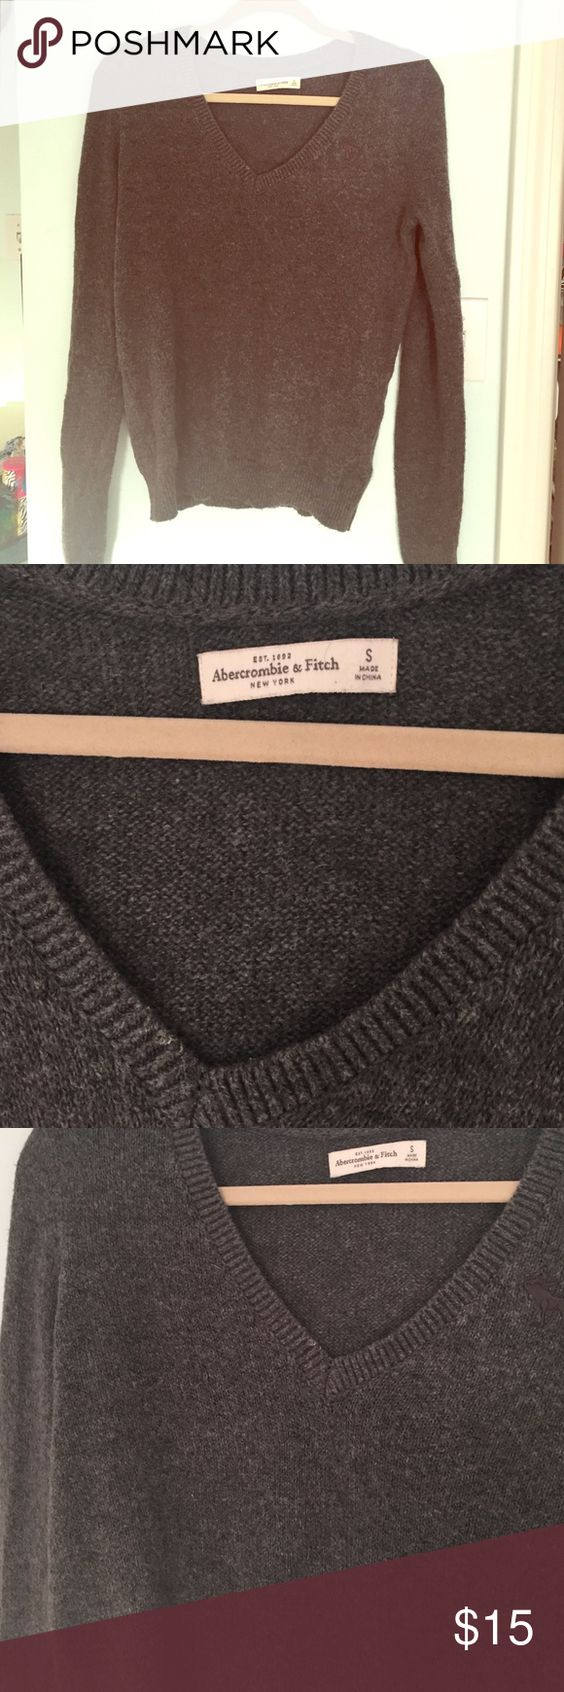 A&F gray sweater Never worn! A&F size small Abercrombie & Fitch Sweaters Crew & Scoop Necks